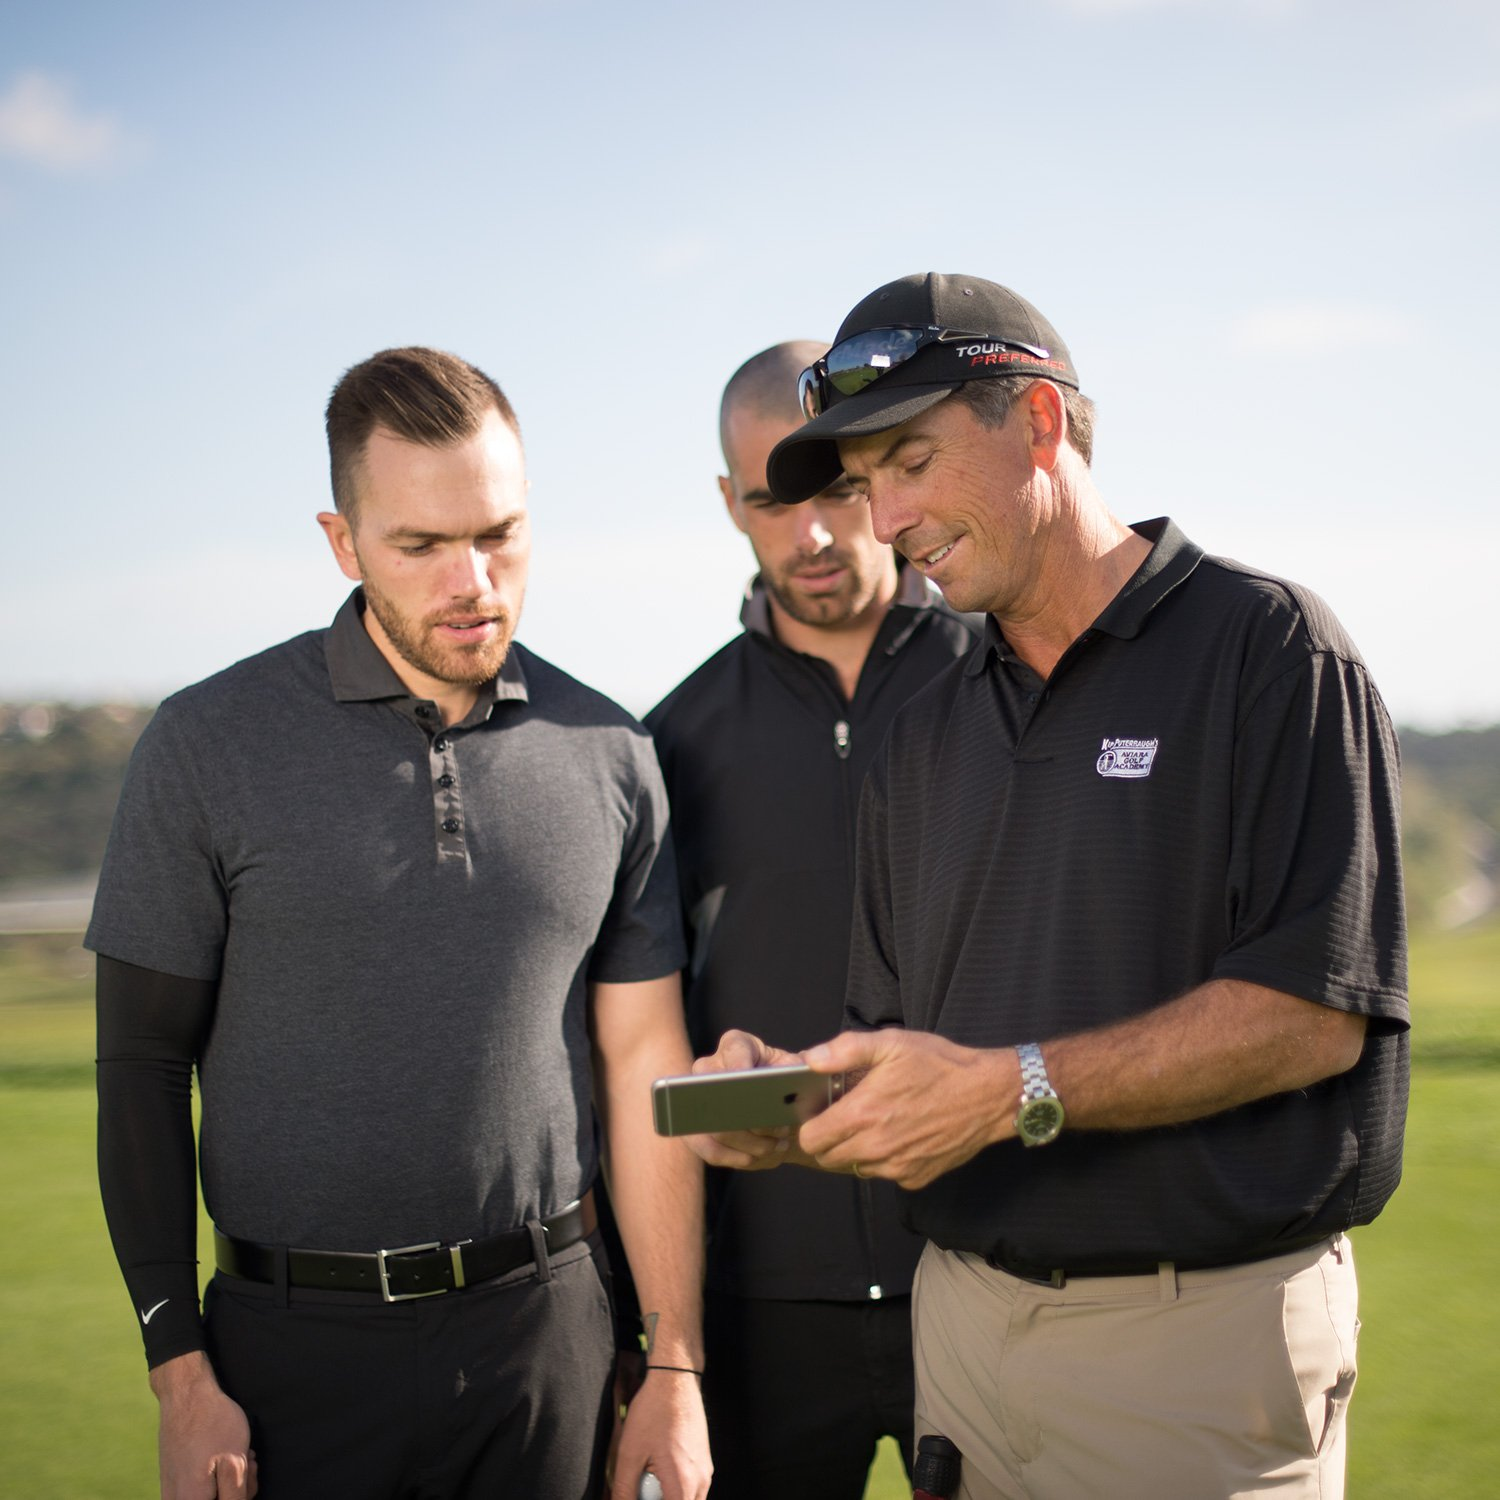 Blast Golf Swing and Stroke Analyzer, Designed by Golf Professionals | November 2017 Software Update by Blast Motion (Image #7)